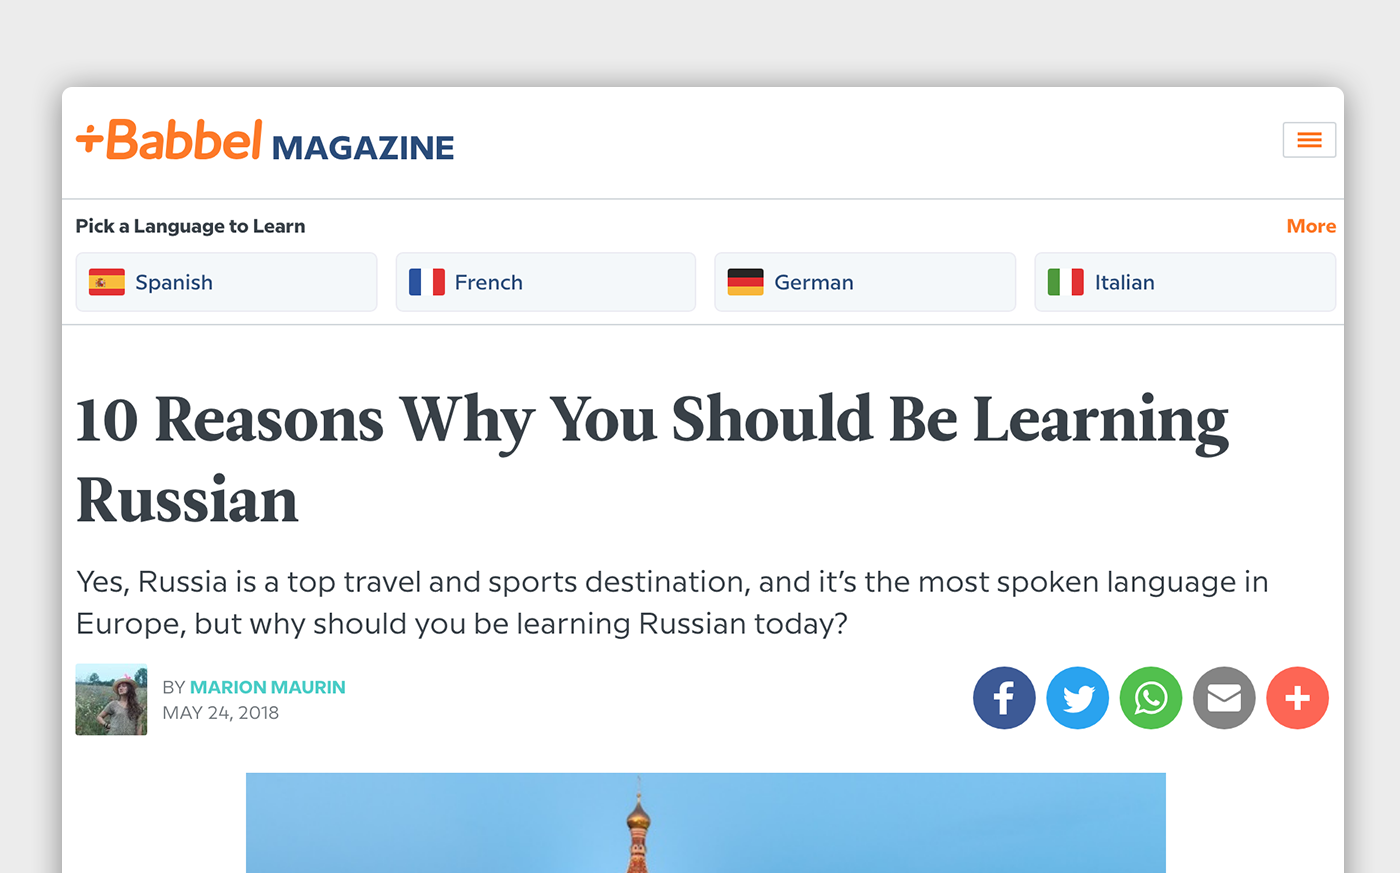 The Babbel Magazine front page with language learning links, a headline, lede, and social share links